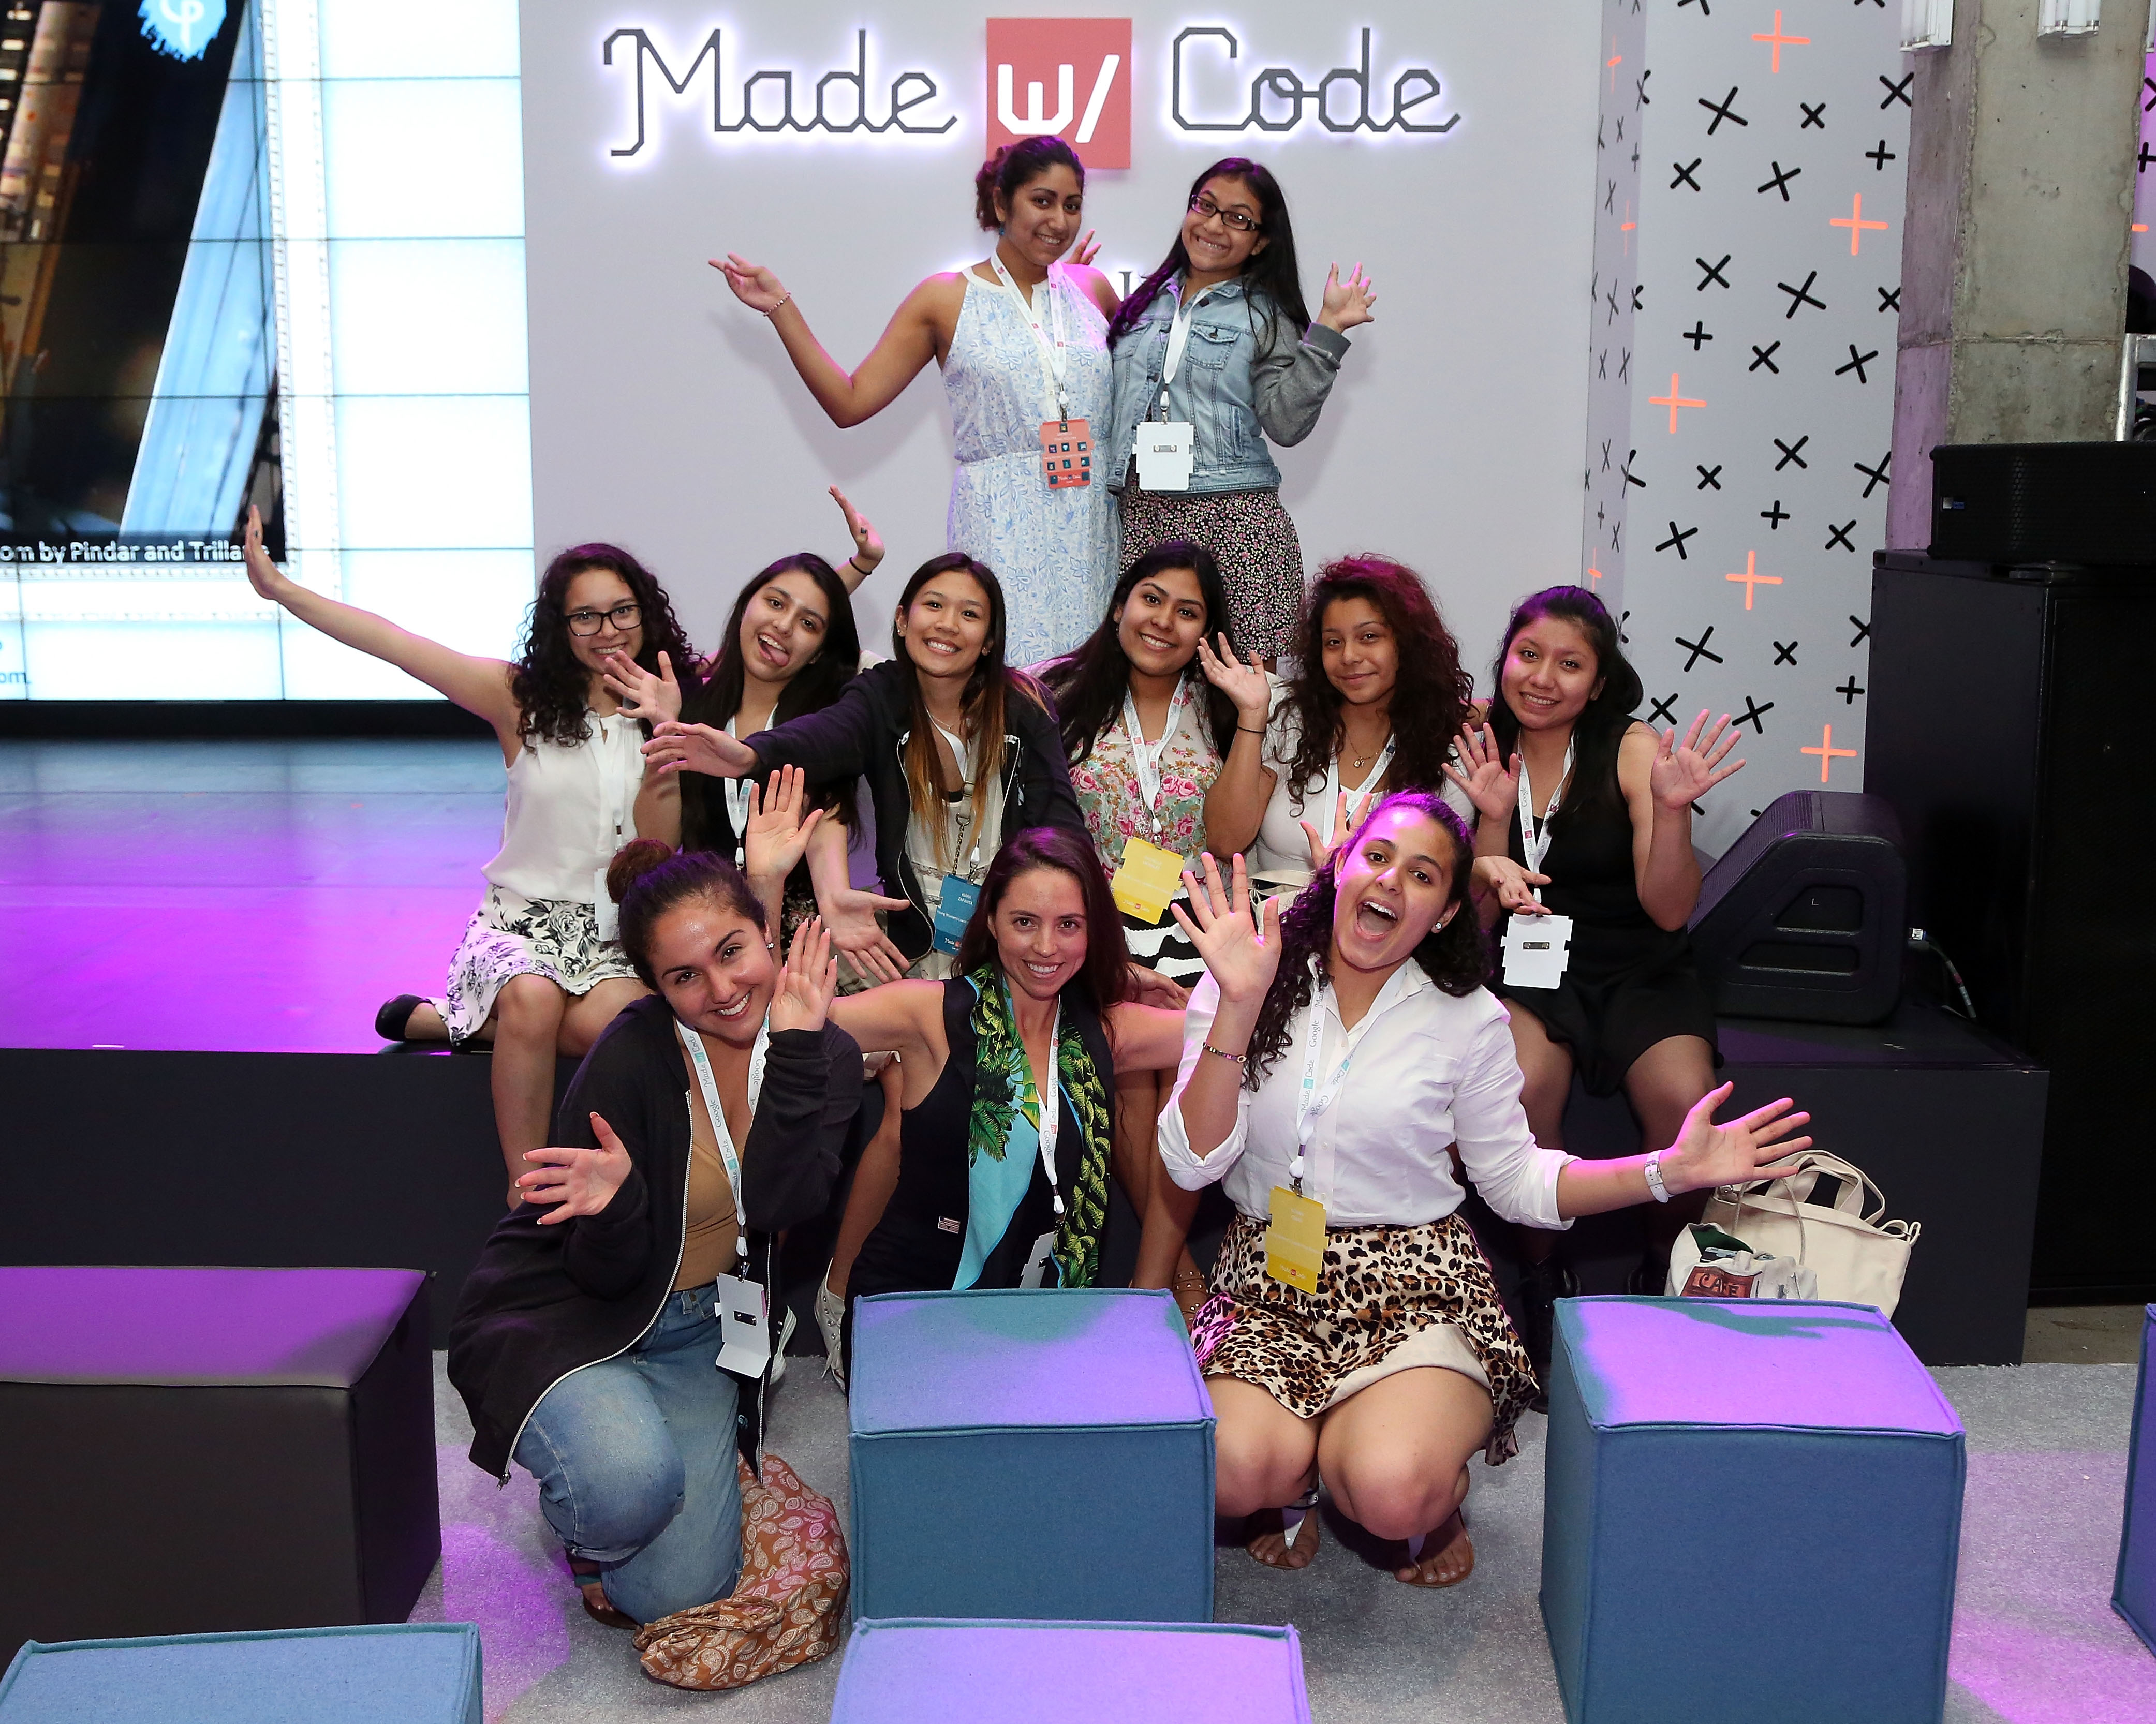 Coding While Female: Getting Our Girls on the Technology Bandwagon